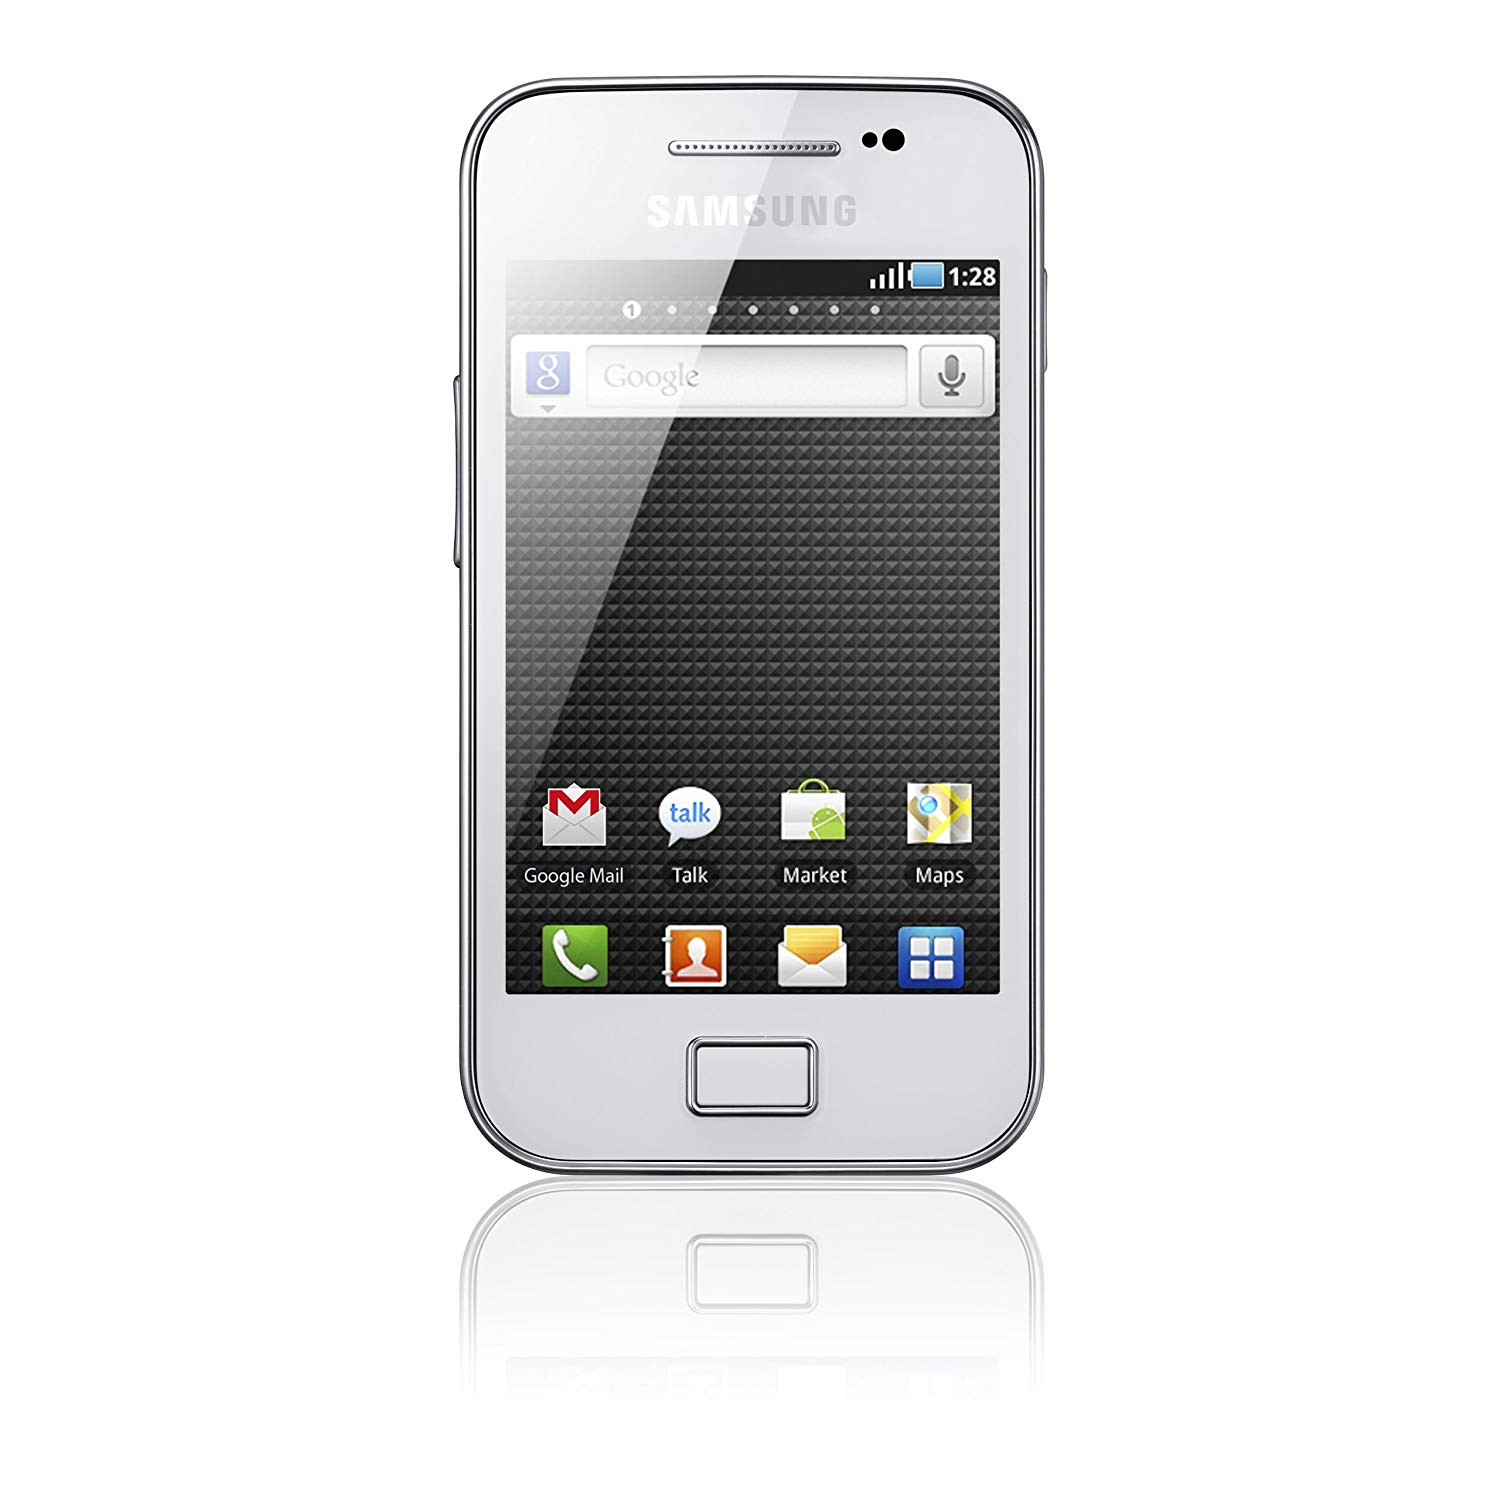 Samsung Galaxy Ace GT-S5830i S5830 White (GSM) T-mobile Unlocked Smartphone  USPS 8806085002418 | eBay